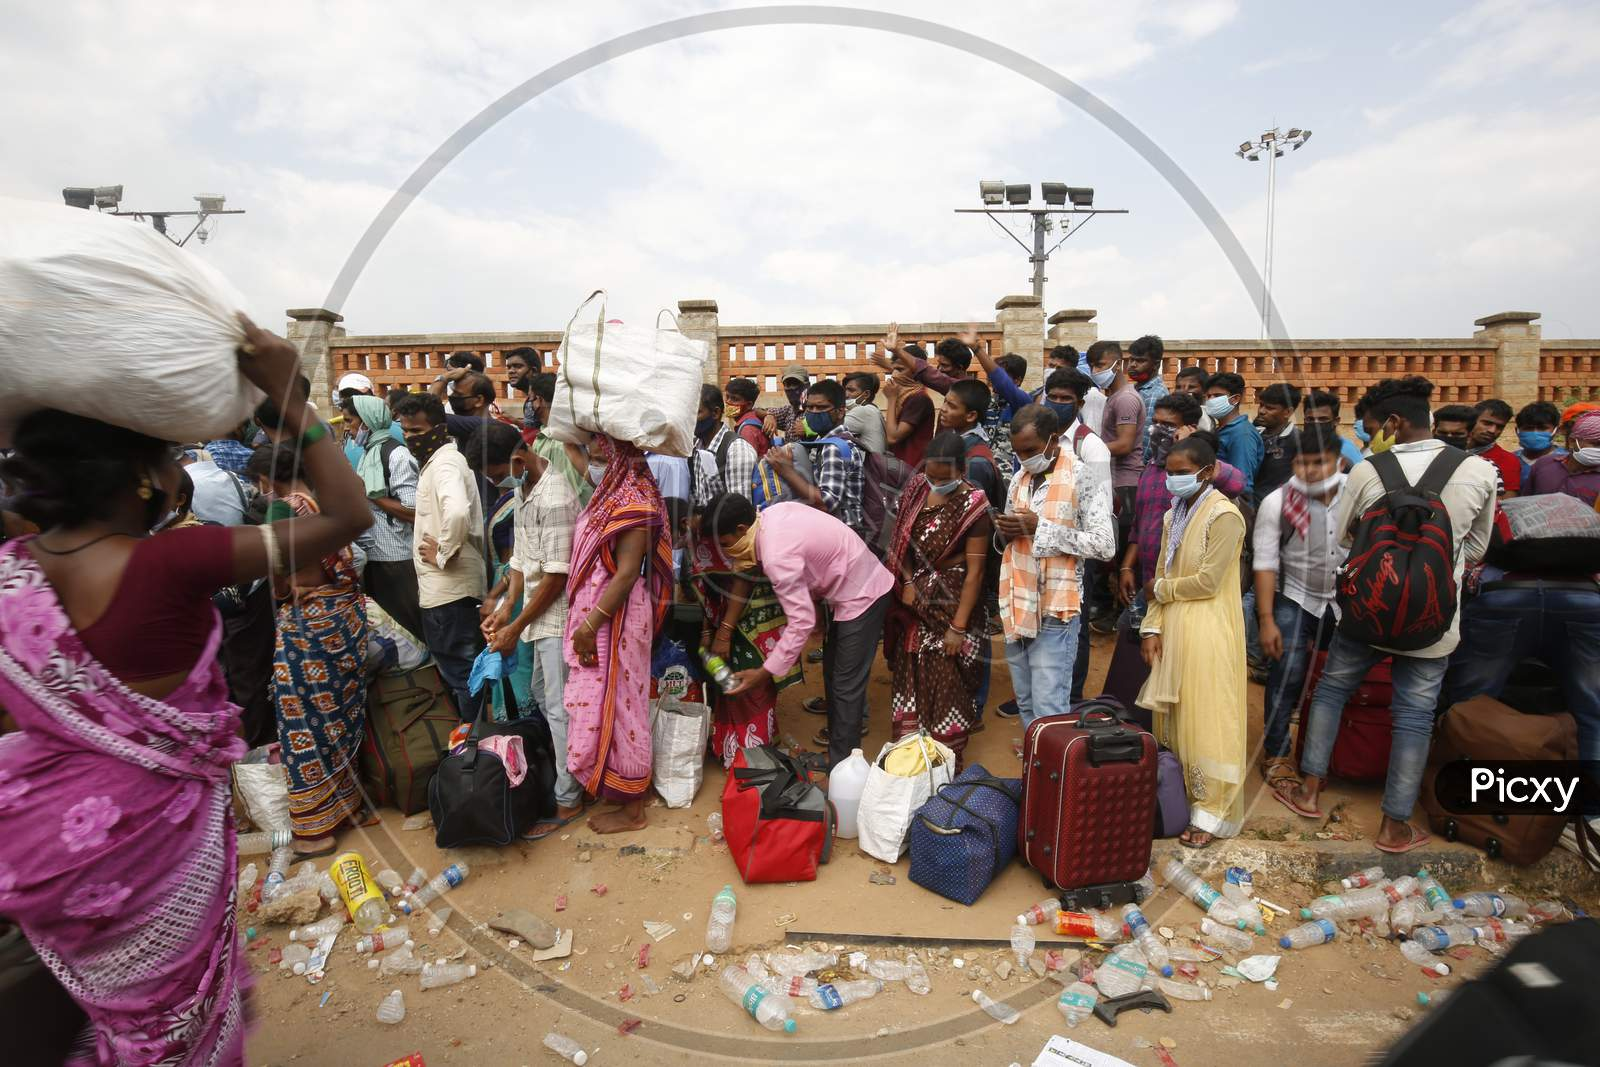 Migrant Workers From Odisha Wait For A Health Screening Before Boarding Buses To Be Taken To A Government-Arranged Train To Their Destination After The State Eased Lockdown Regulations During The Extended Nationwide Lockdown To Prevent The Spread Of Coronavirus (Covid-19) In Bangalore, India.